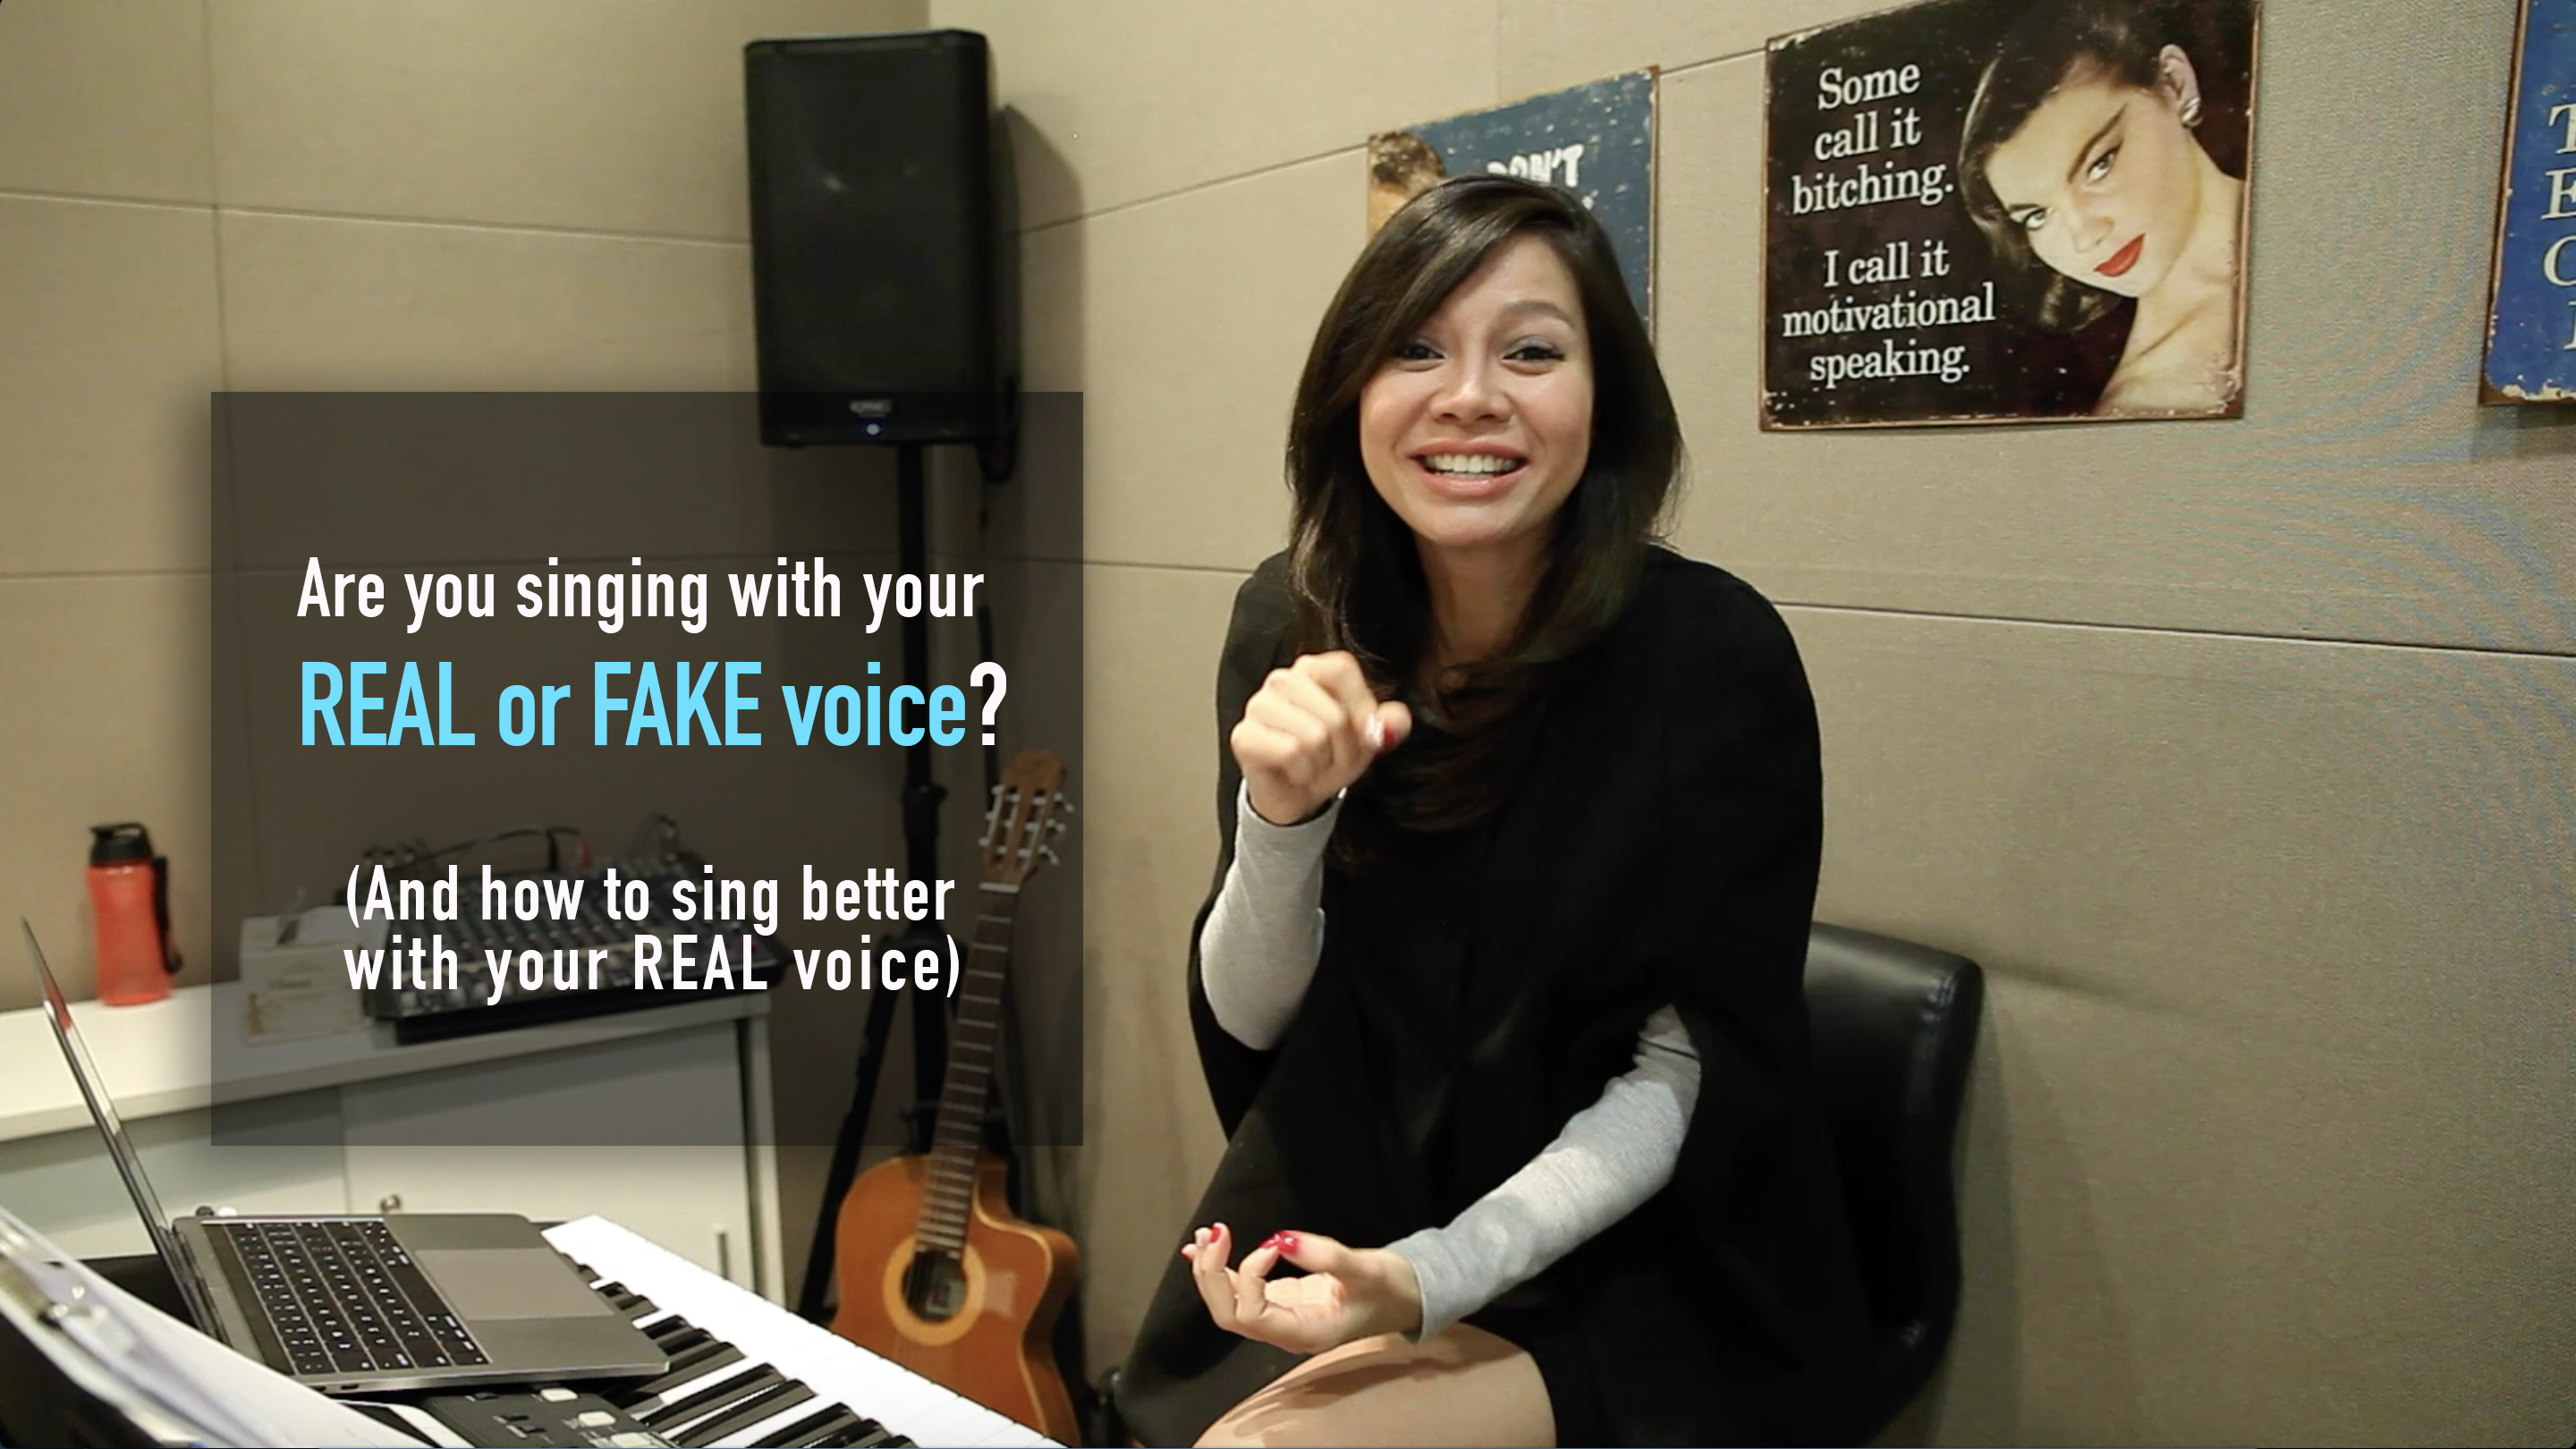 Singing with real voice or fake voice